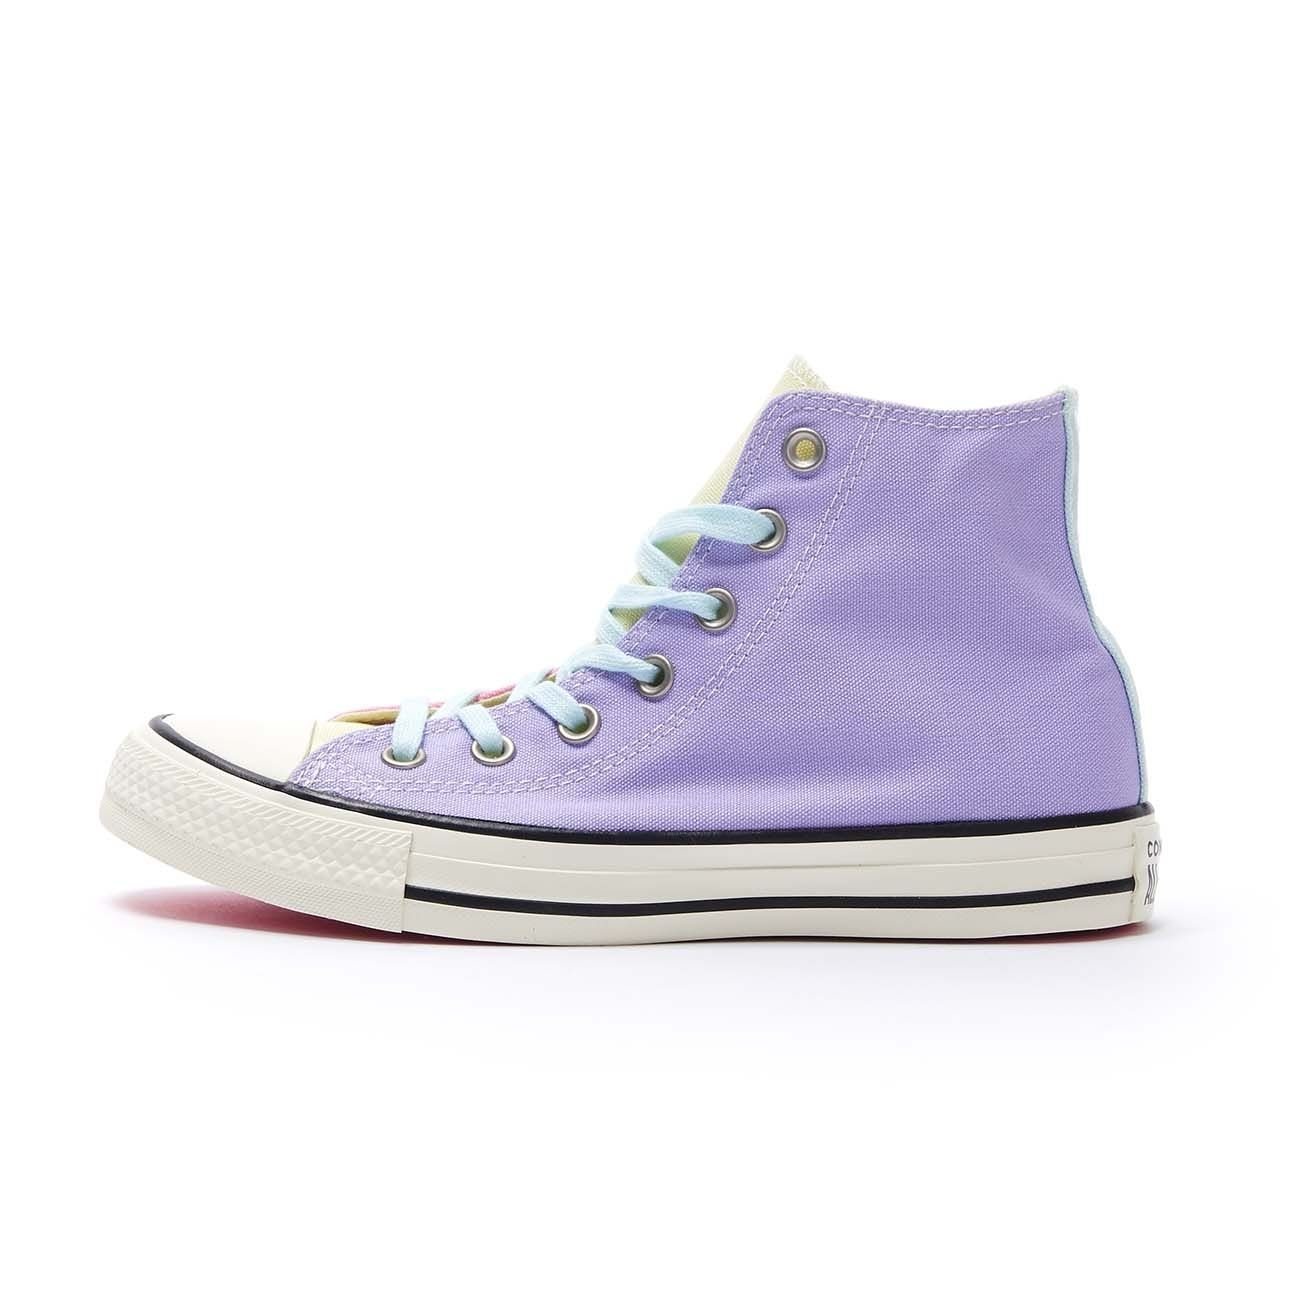 CONVERSE SNEAKERS CHUCK TAYLOR ALL STAR HI Donna Purple agate teal ...